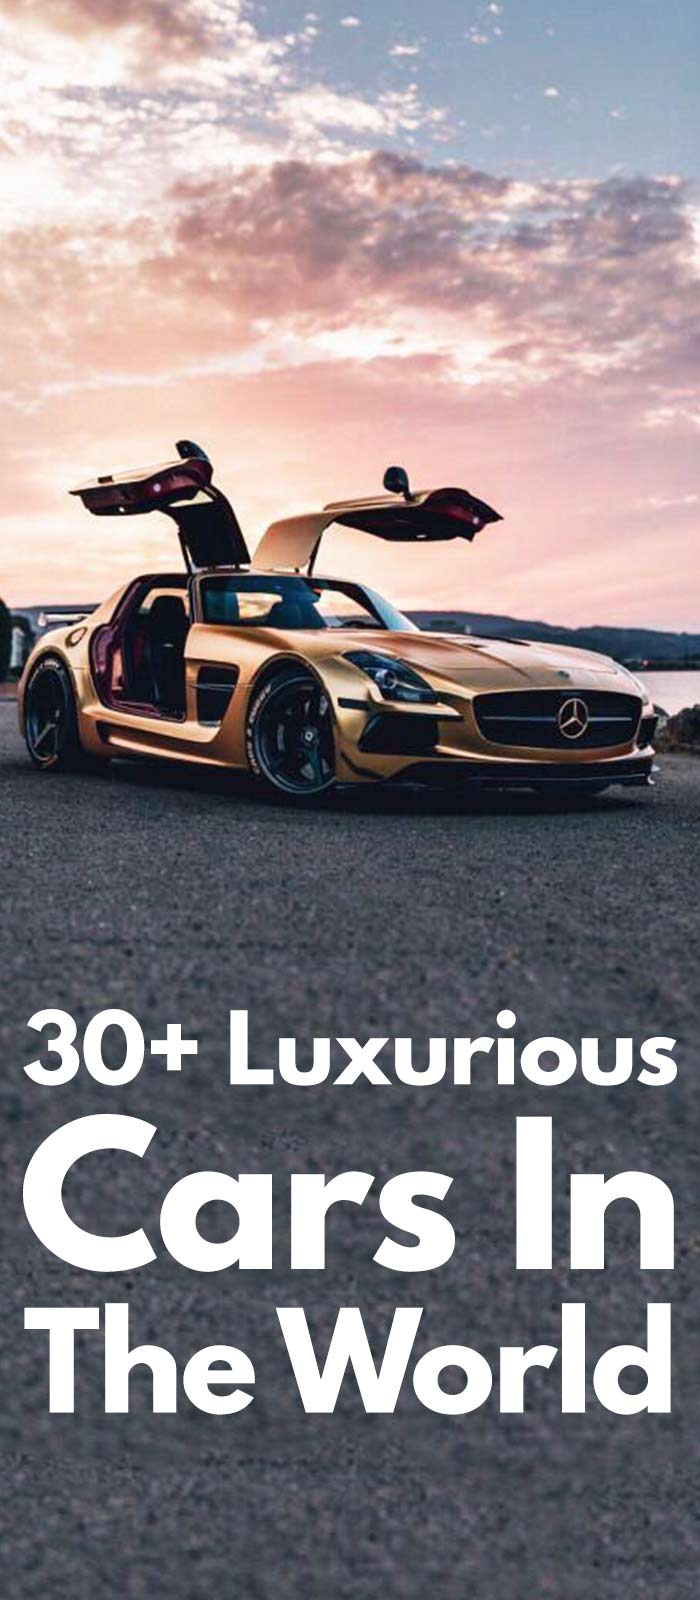 30+ Luxurious Cars In The World!